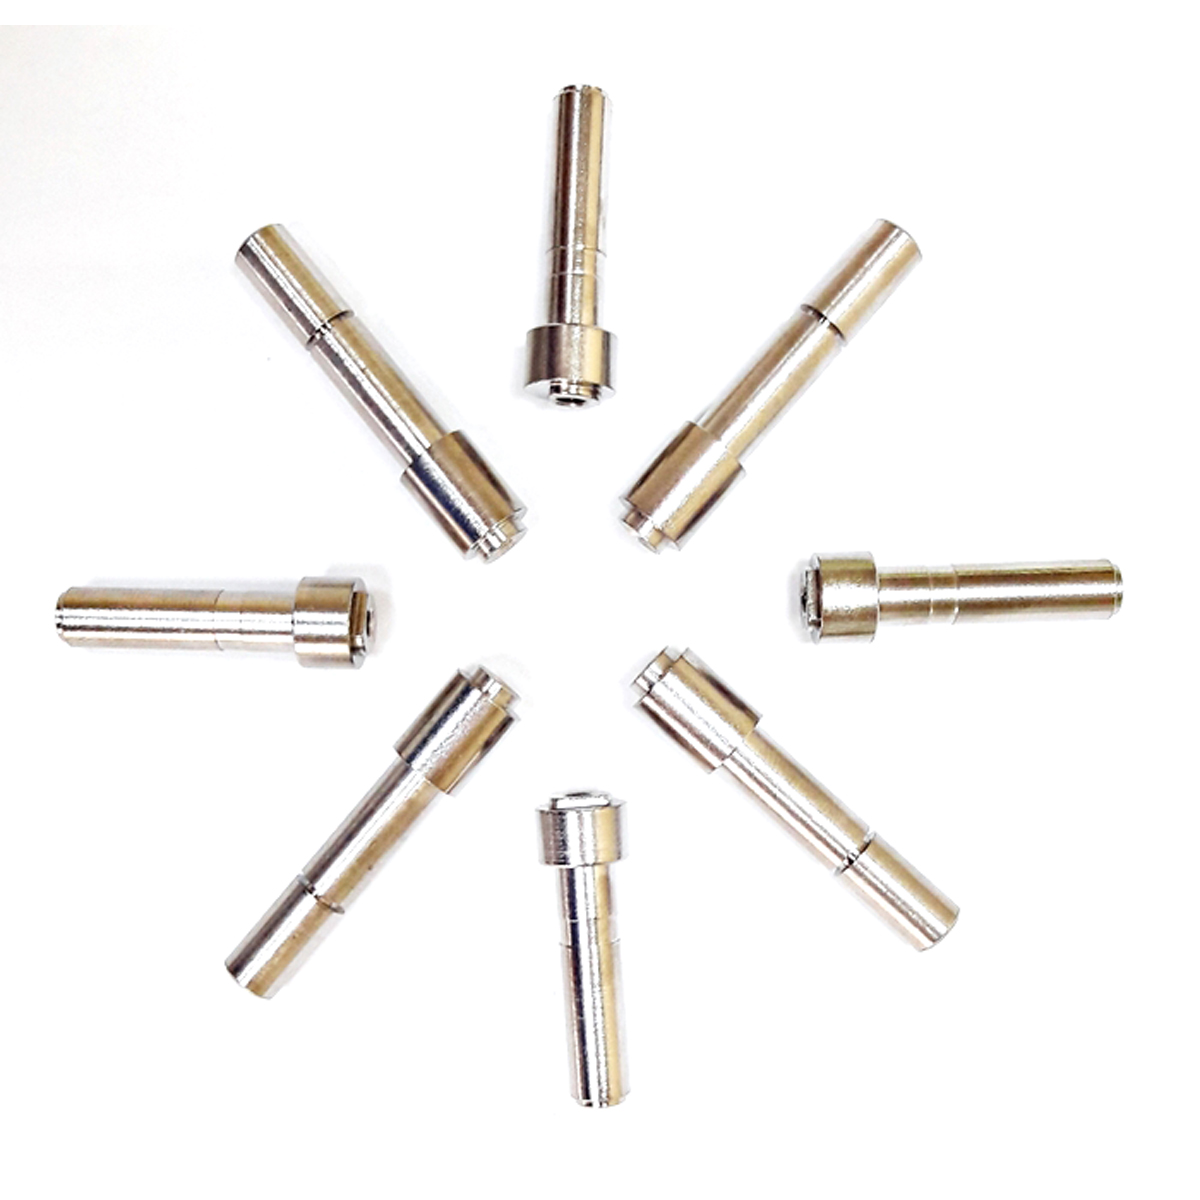 D Customize high Precision Medical Equipment Machining Turning stainless steel Brass Cnc <strong>Parts</strong>